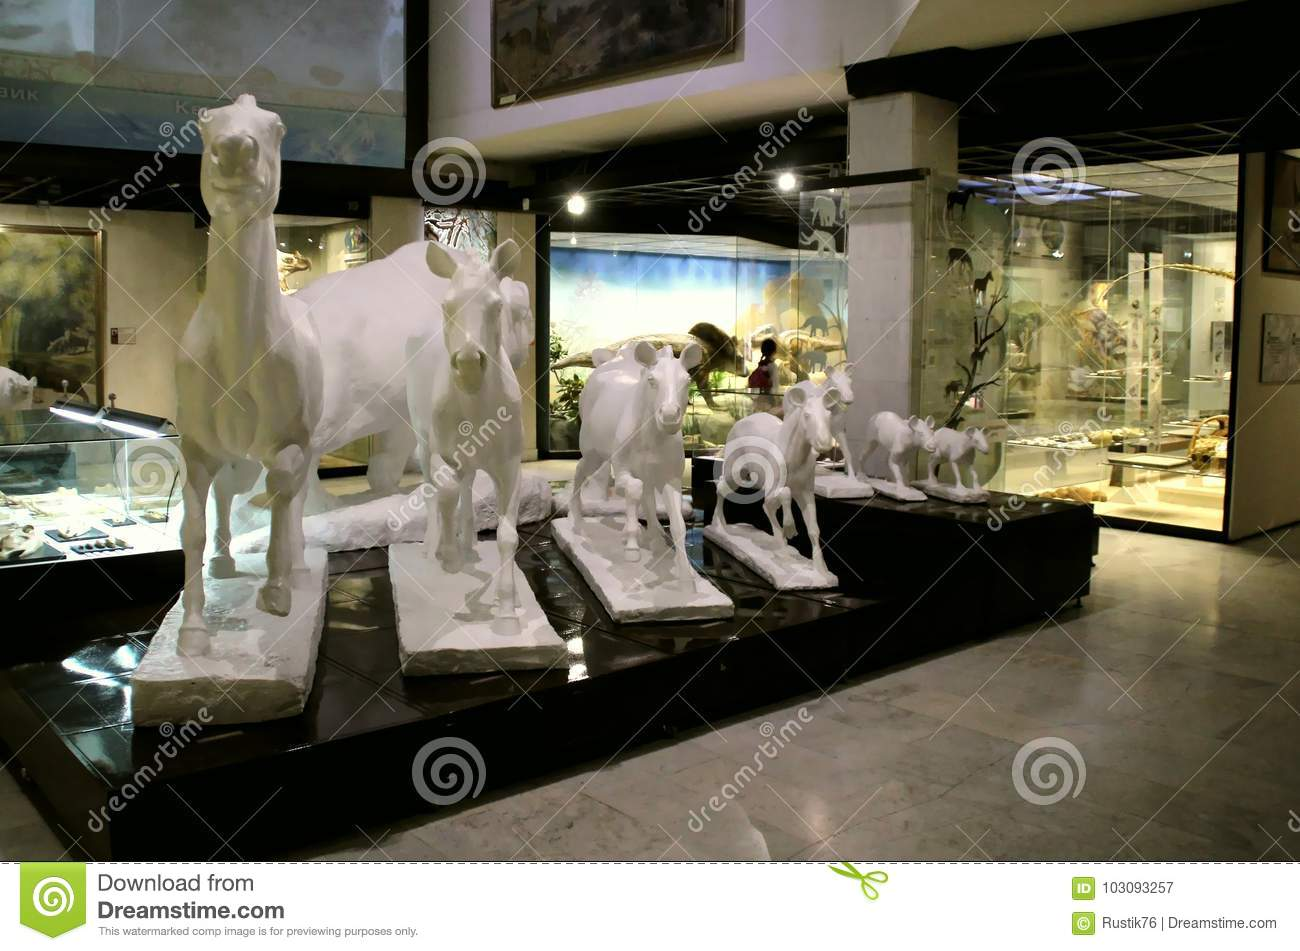 Sculpture of extinct animals.